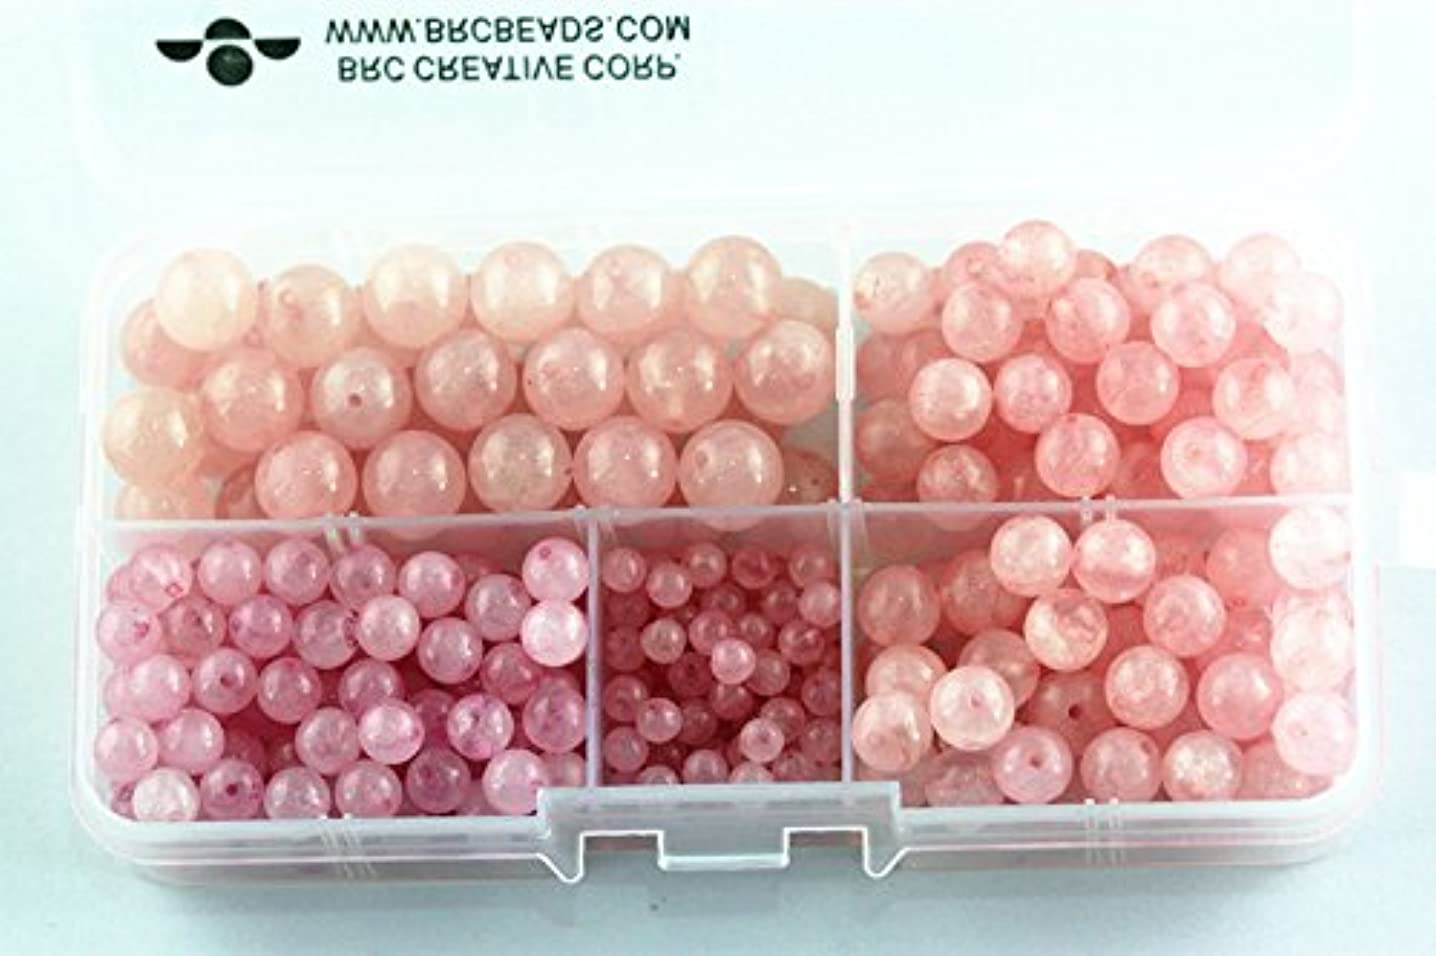 BRCbeads Rose Quartz Natural Gemstone Loose Beads Round Value Box Set 340pcs Per Box for Jewelry Making (Plastic Container is Included)-4,6,8,10mm